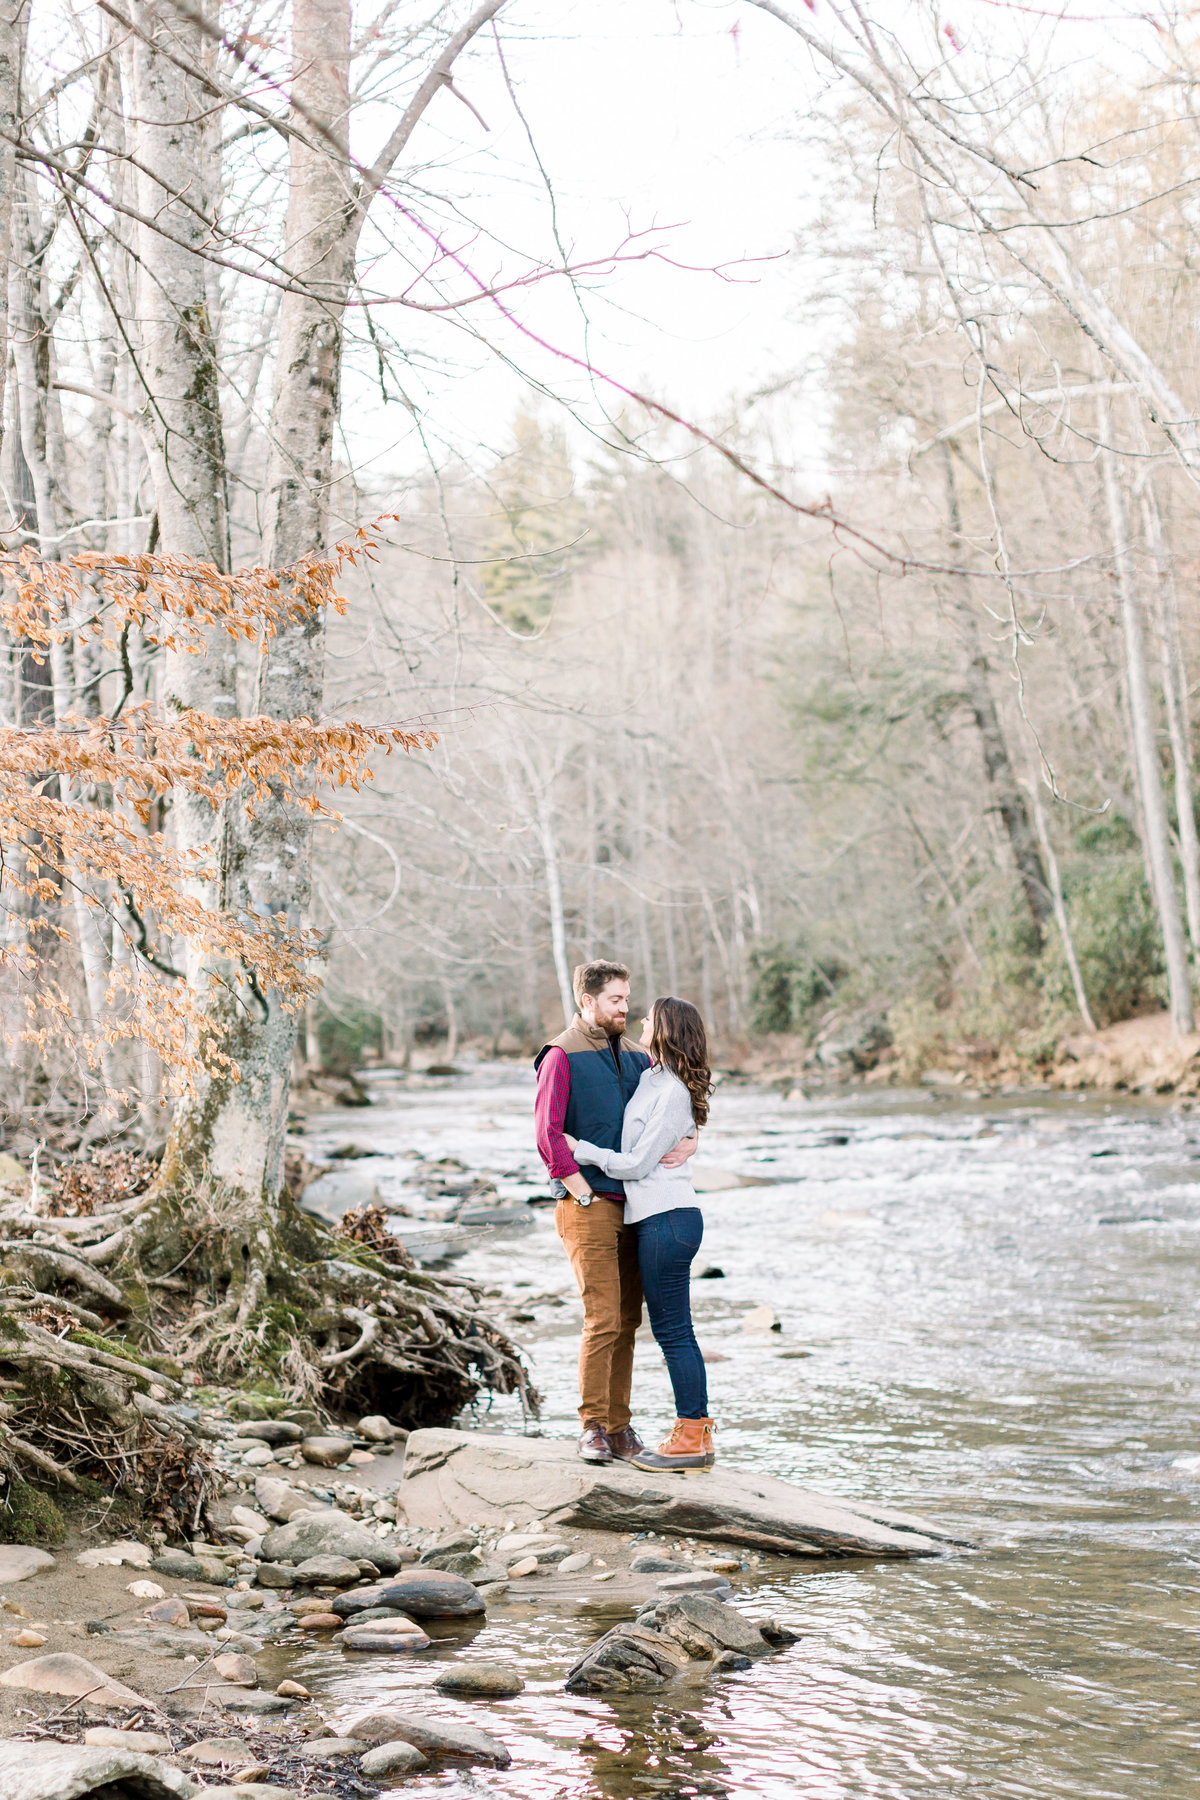 James and Katie Engaged-Samantha Laffoon Photography-183